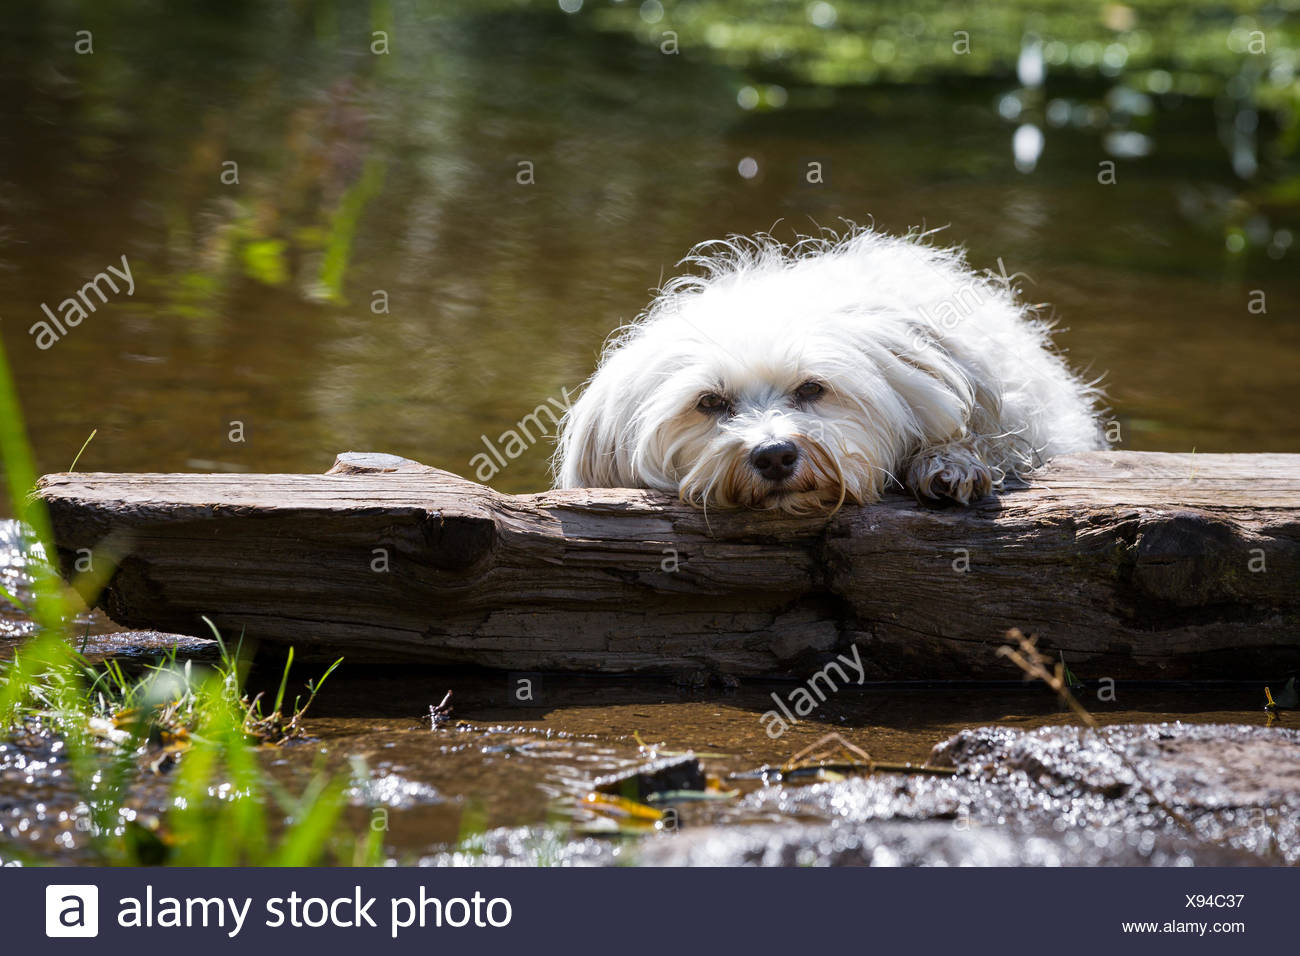 Dog in distress - Stock Image